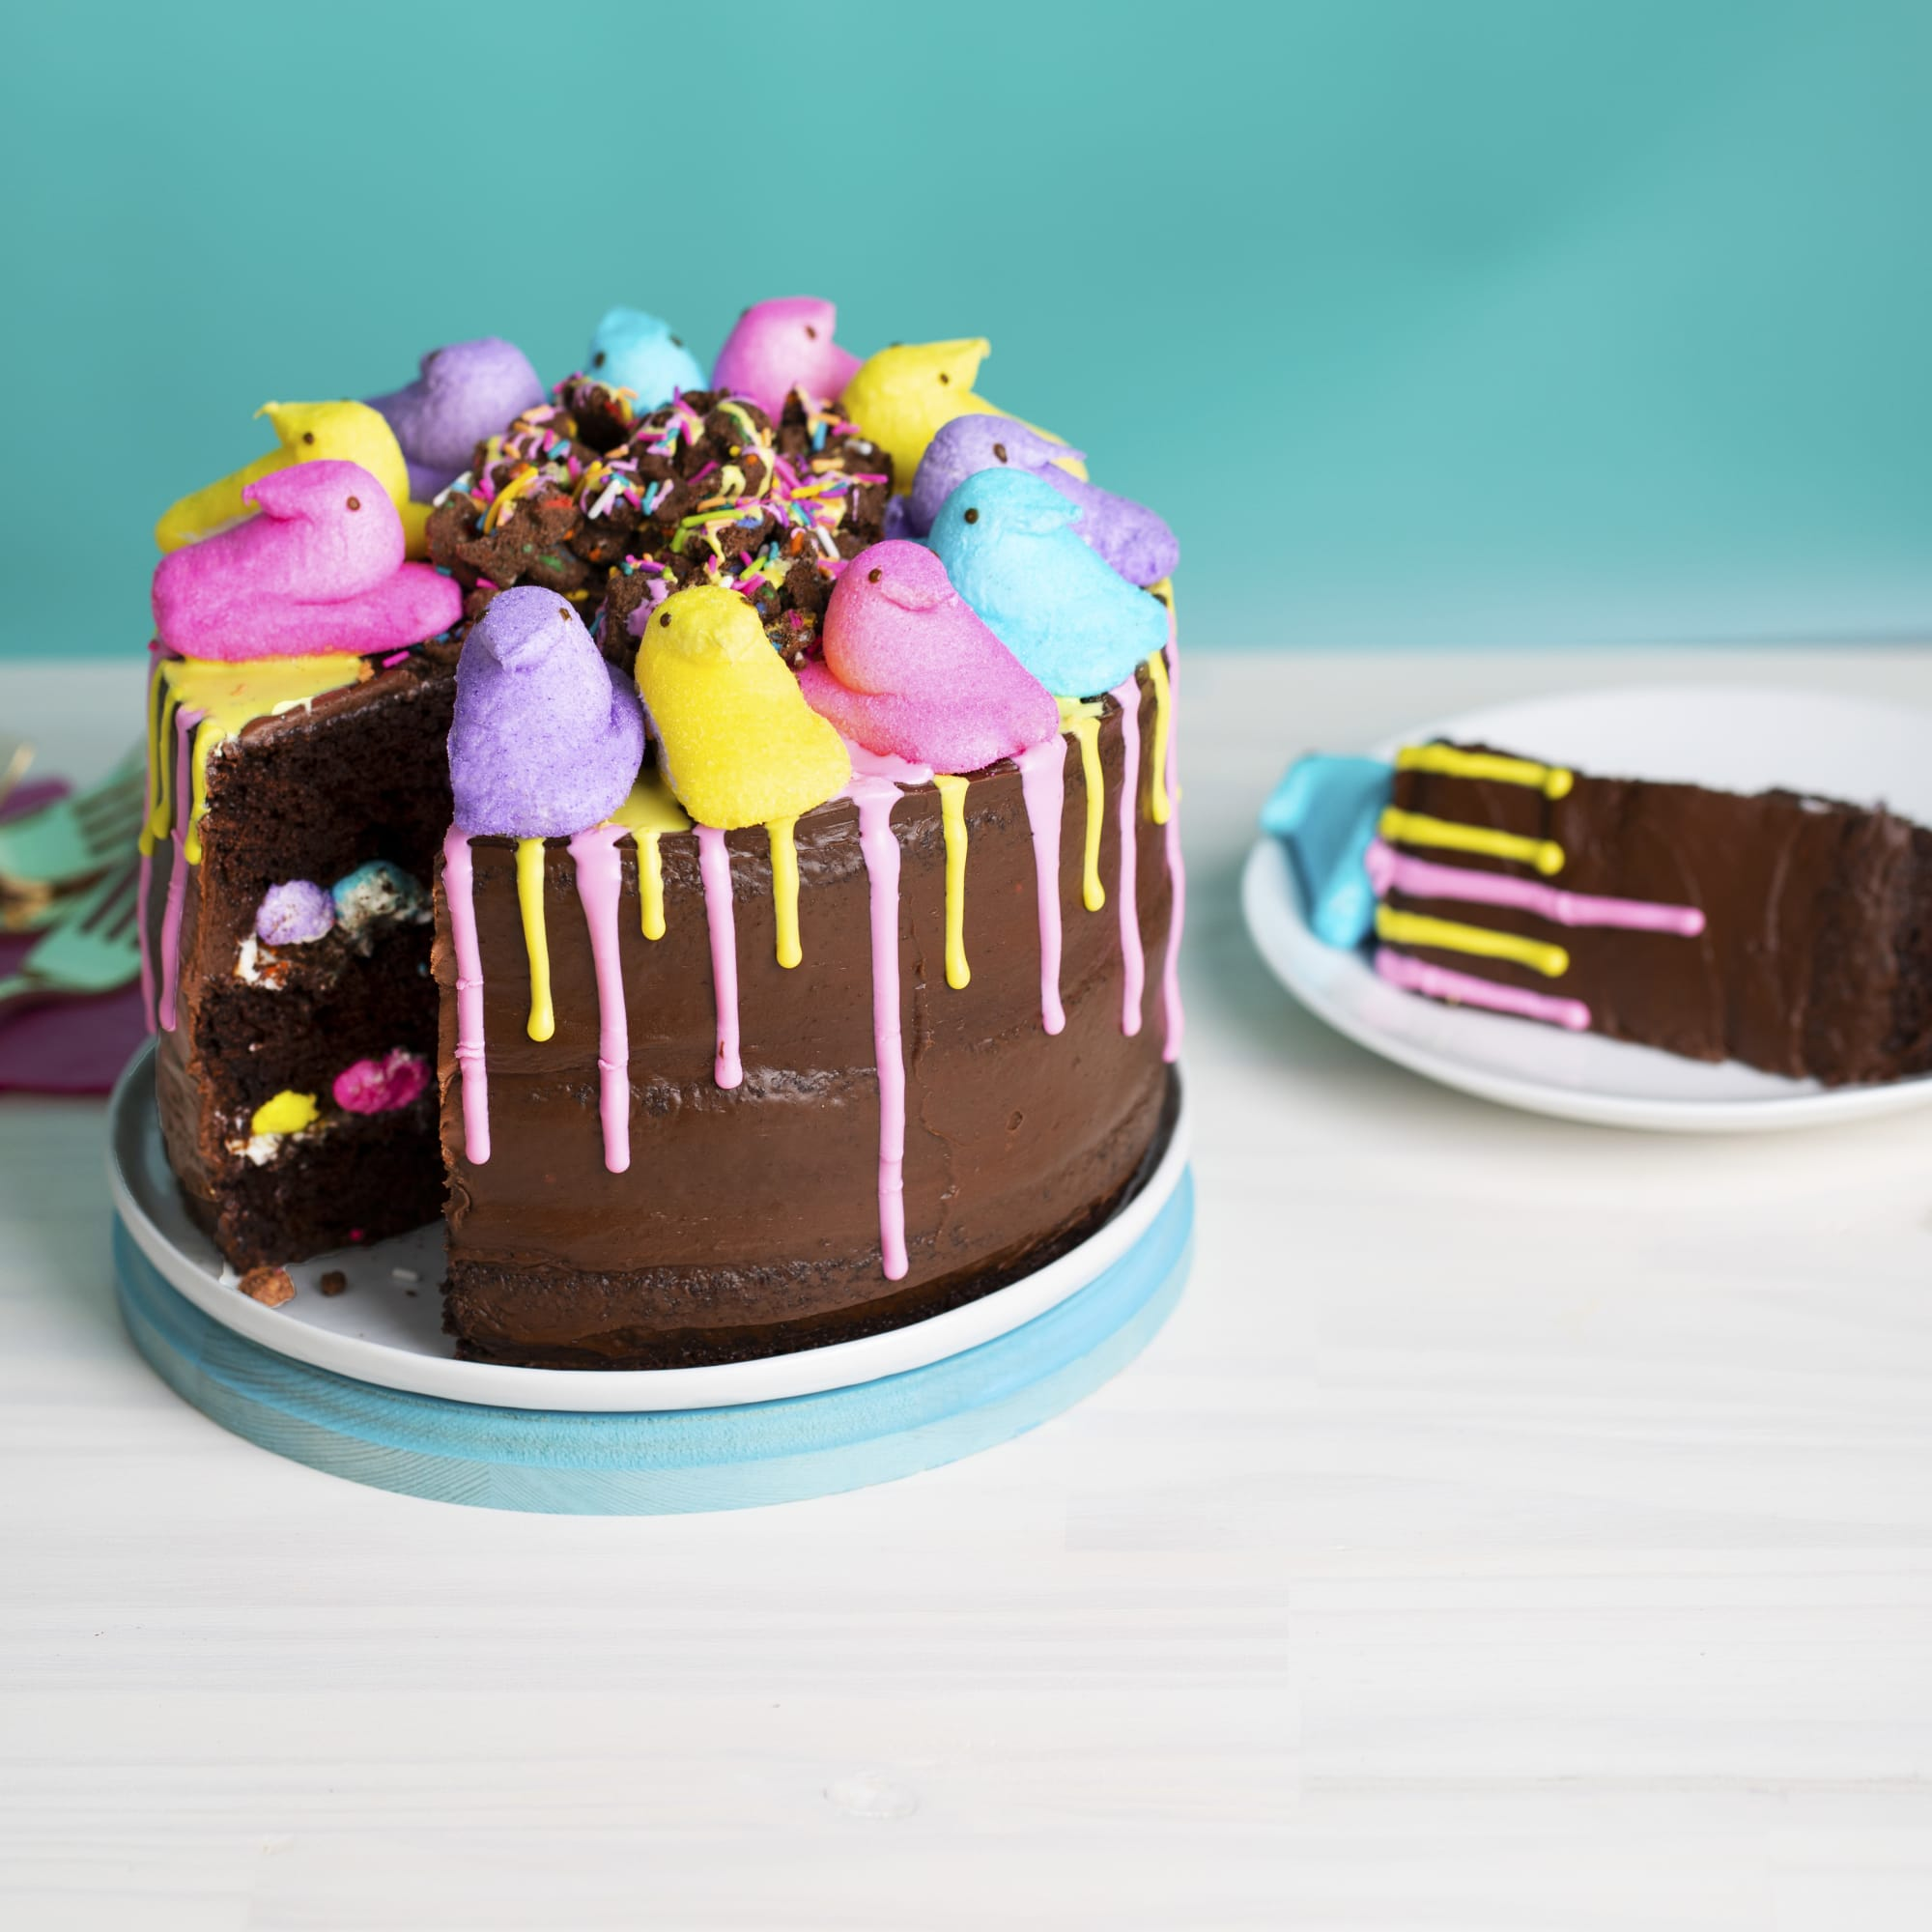 PEEPS Duncan Hines Chocolate Crunch Layer Cake and Vanilla Drizzle.